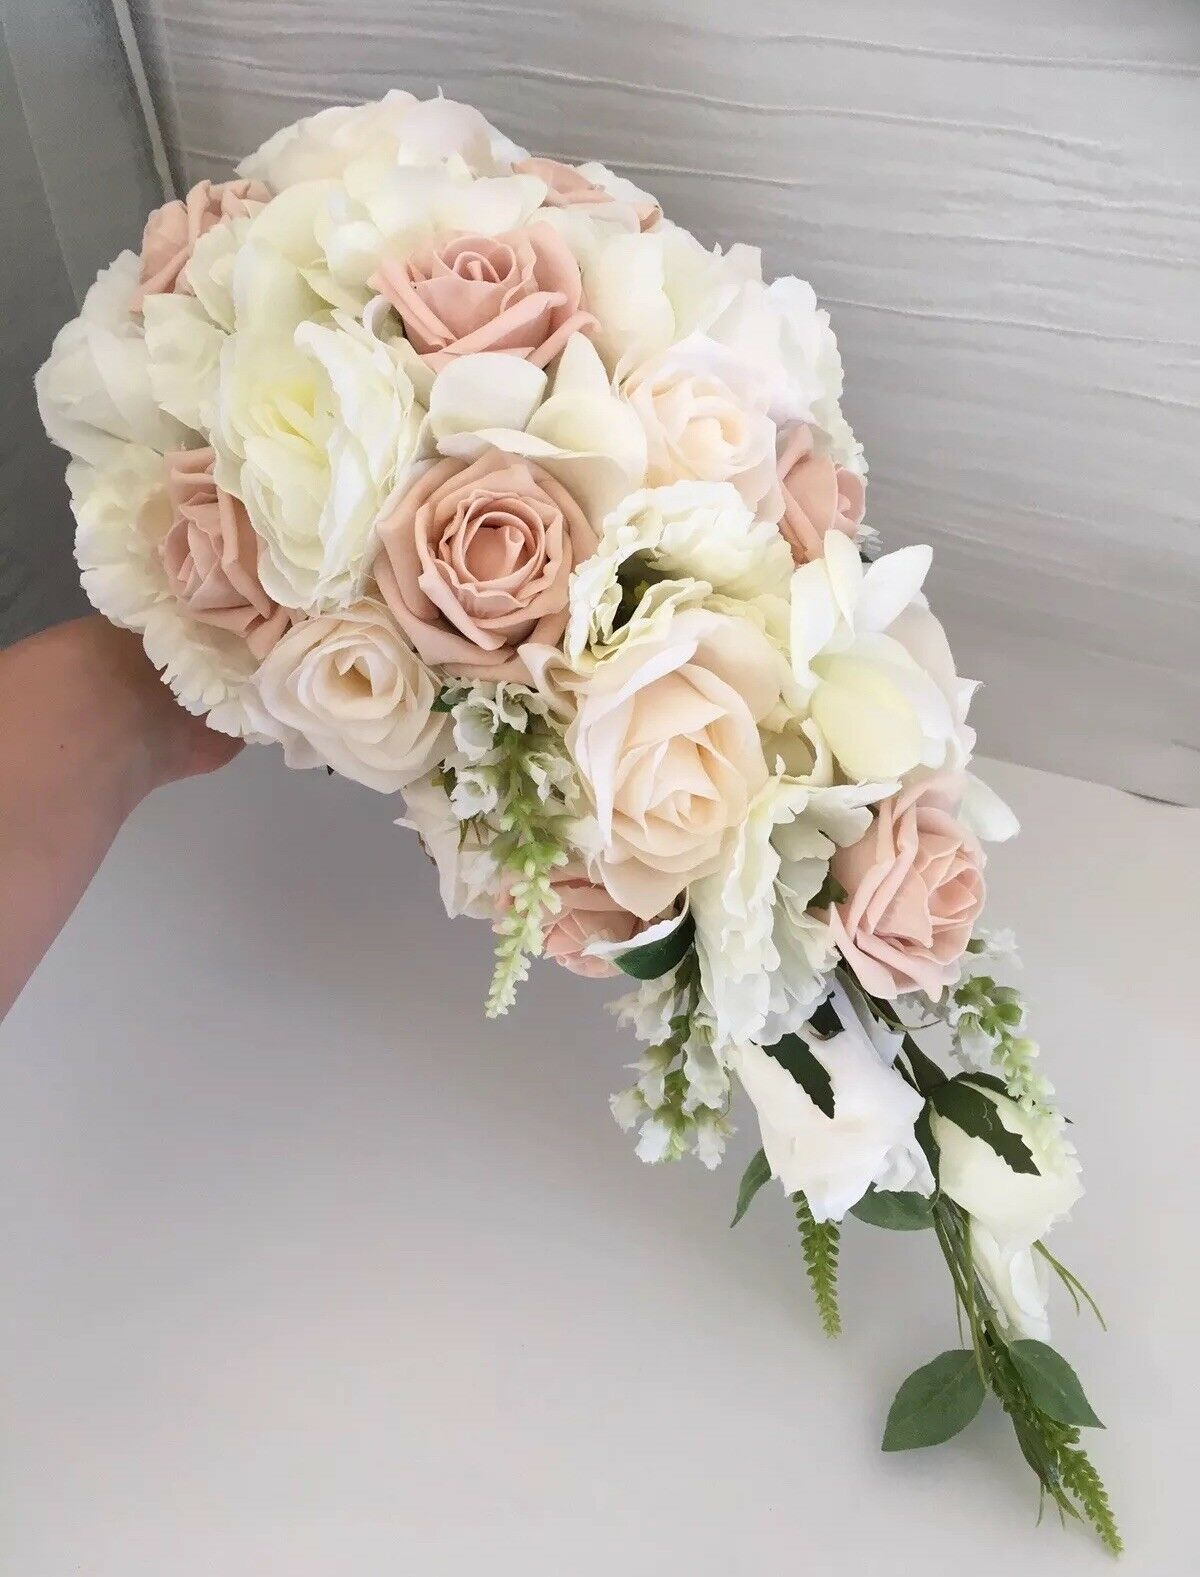 Beautiful Bridal Shower Bouquet In Ivory, Vintage Peach And Champagne - mariage